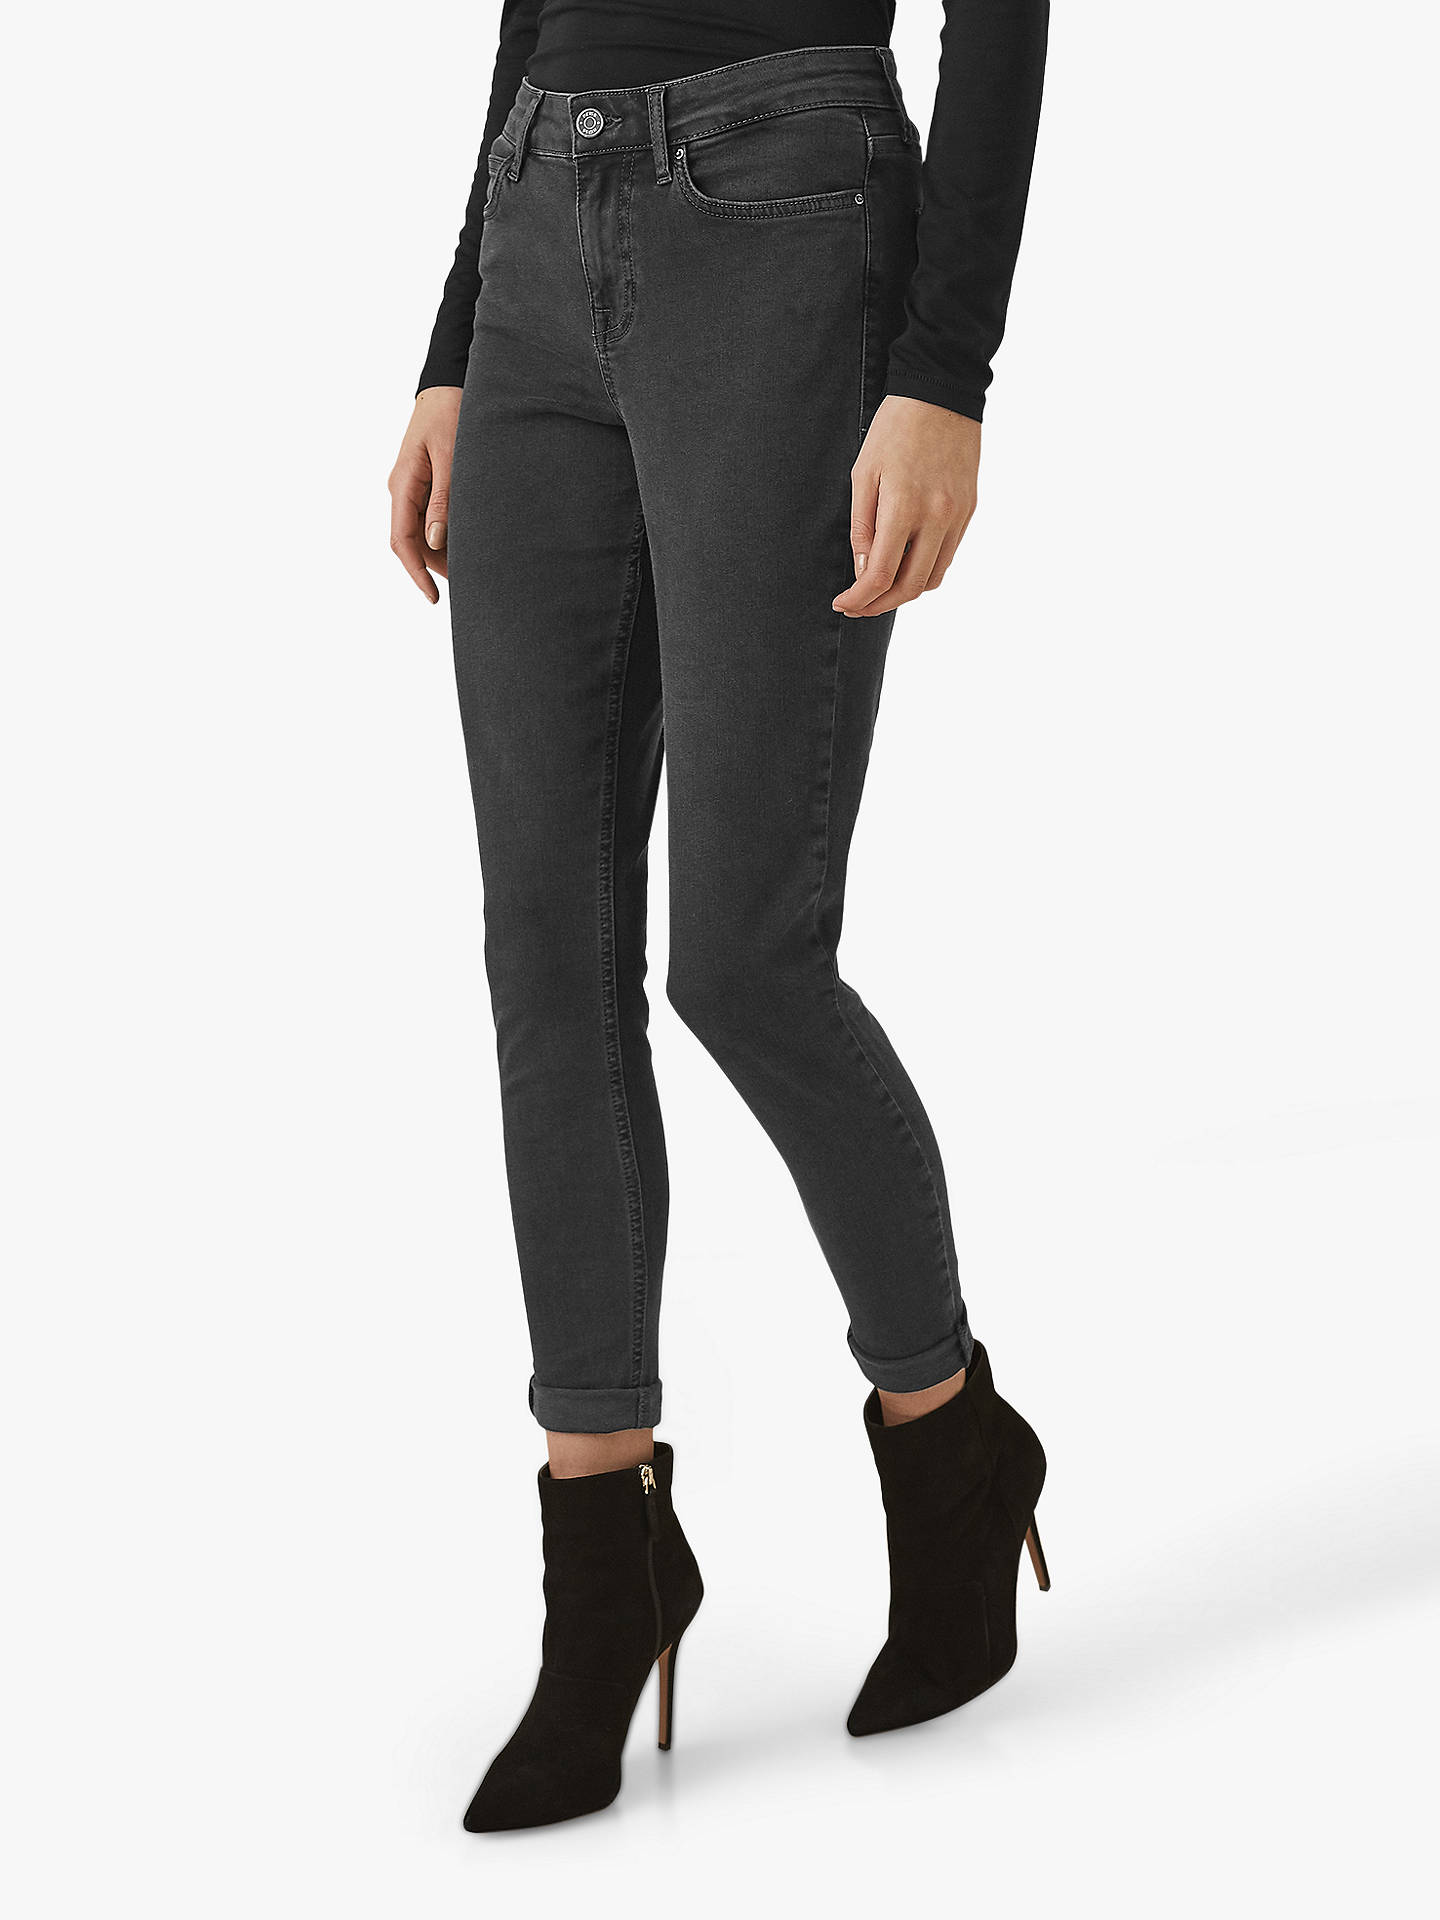 Buy Reiss Lux Mid Rise Skinny Jeans, Washed Black, 24 Online at johnlewis.com